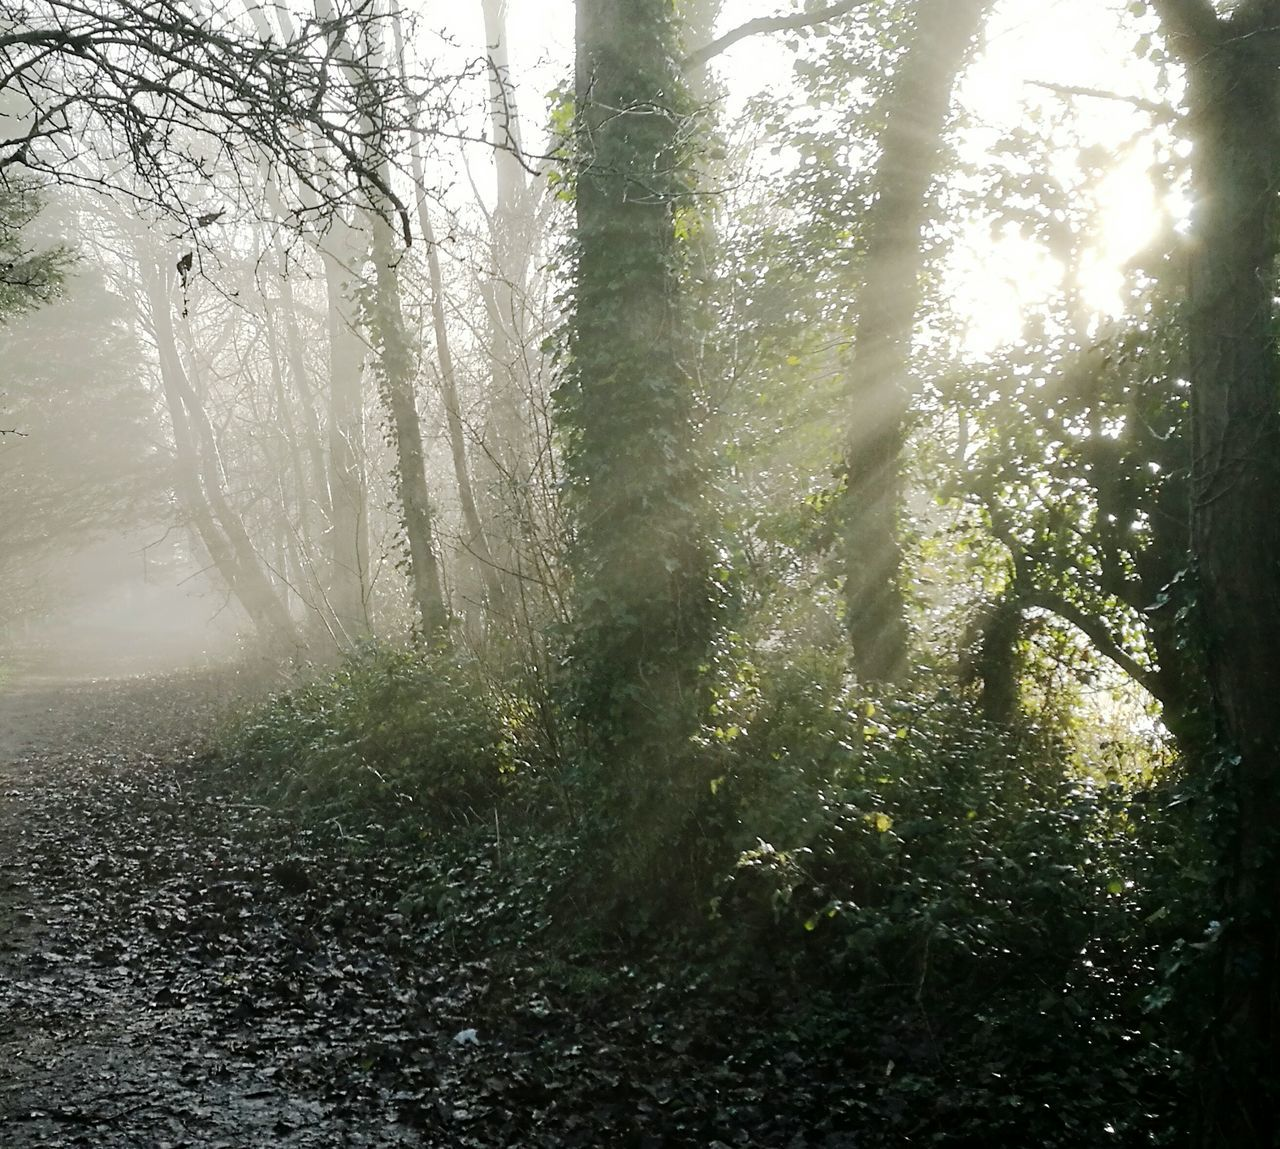 Sunlight streaming onto a woodland path in fog Tree Nature Beauty In Nature Fog Outdoors Woodland Path Woodland Walks Sunlight Through Trees Sunbeams Rays Of Sunshine Winter Walking In The Woods Winter Woodland No People Day First Eyeem Photo